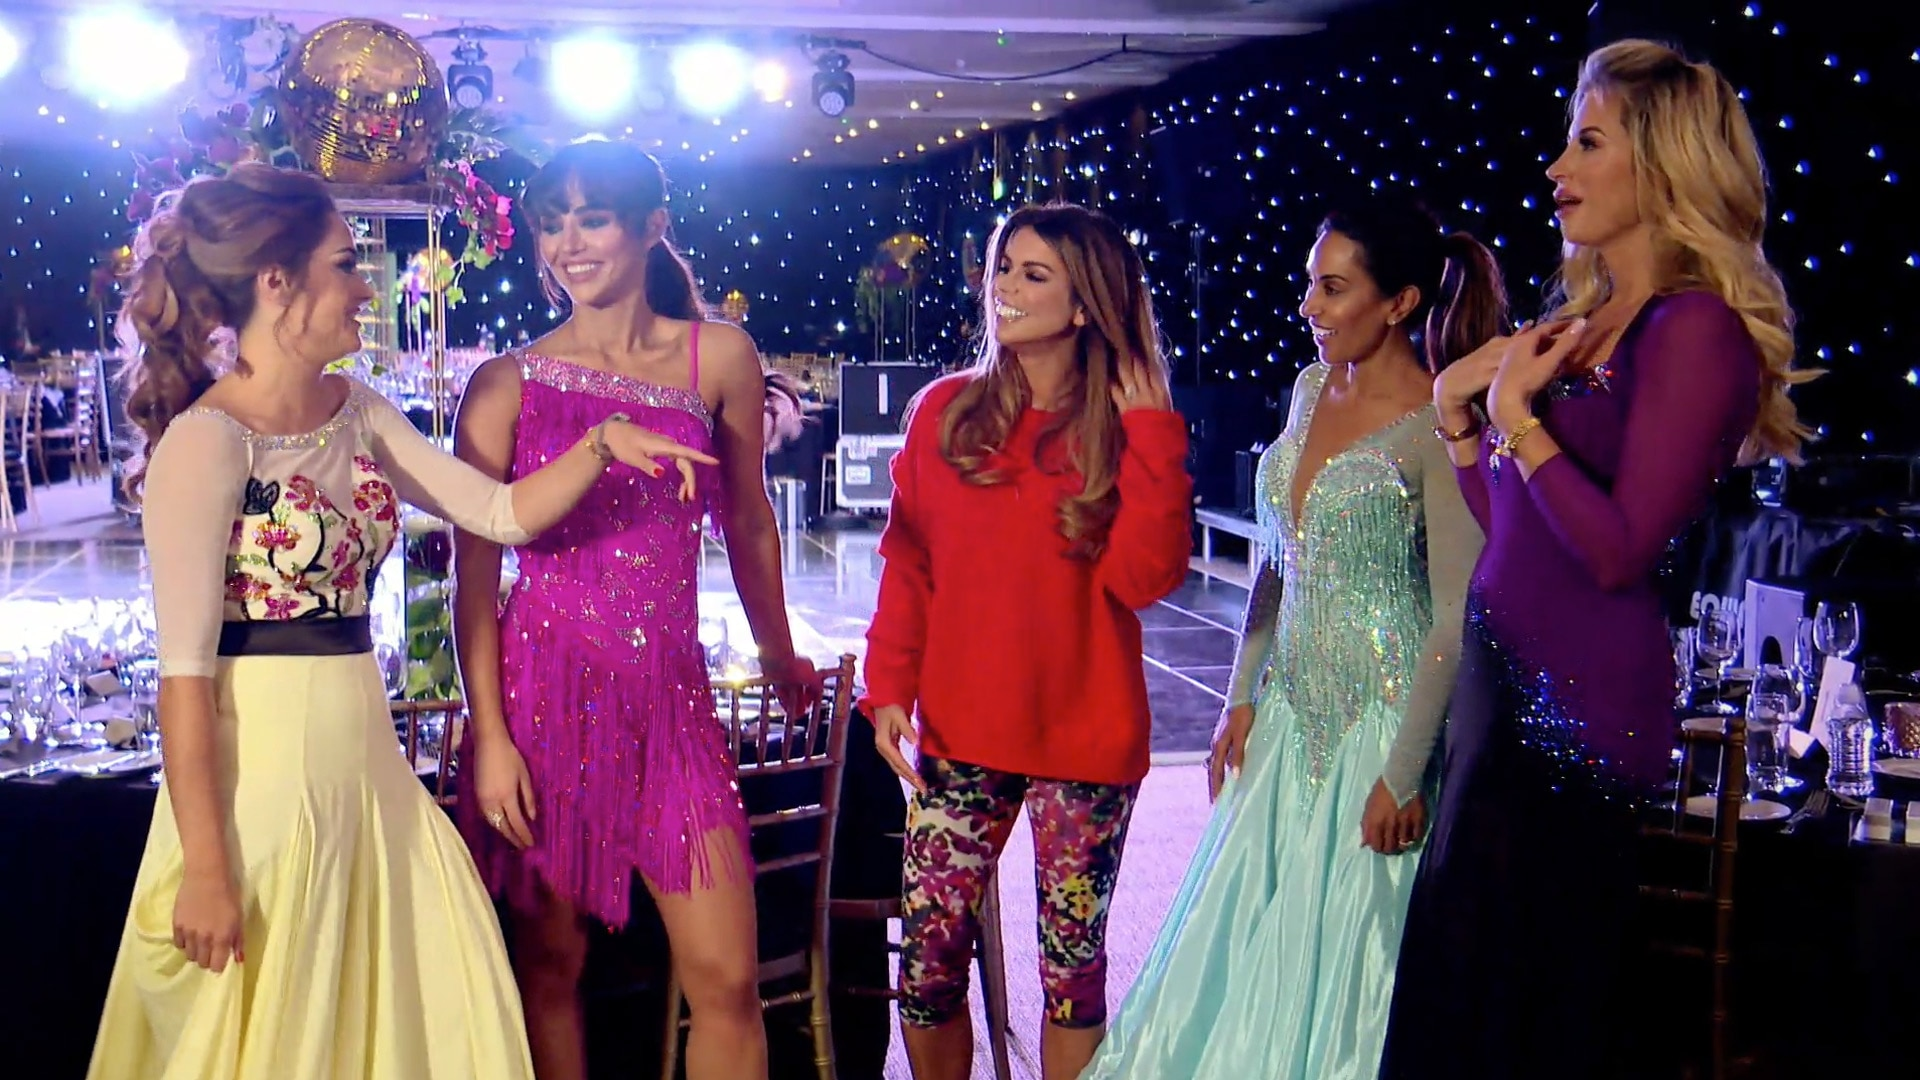 the real housewives of cheshire season 8 episodes